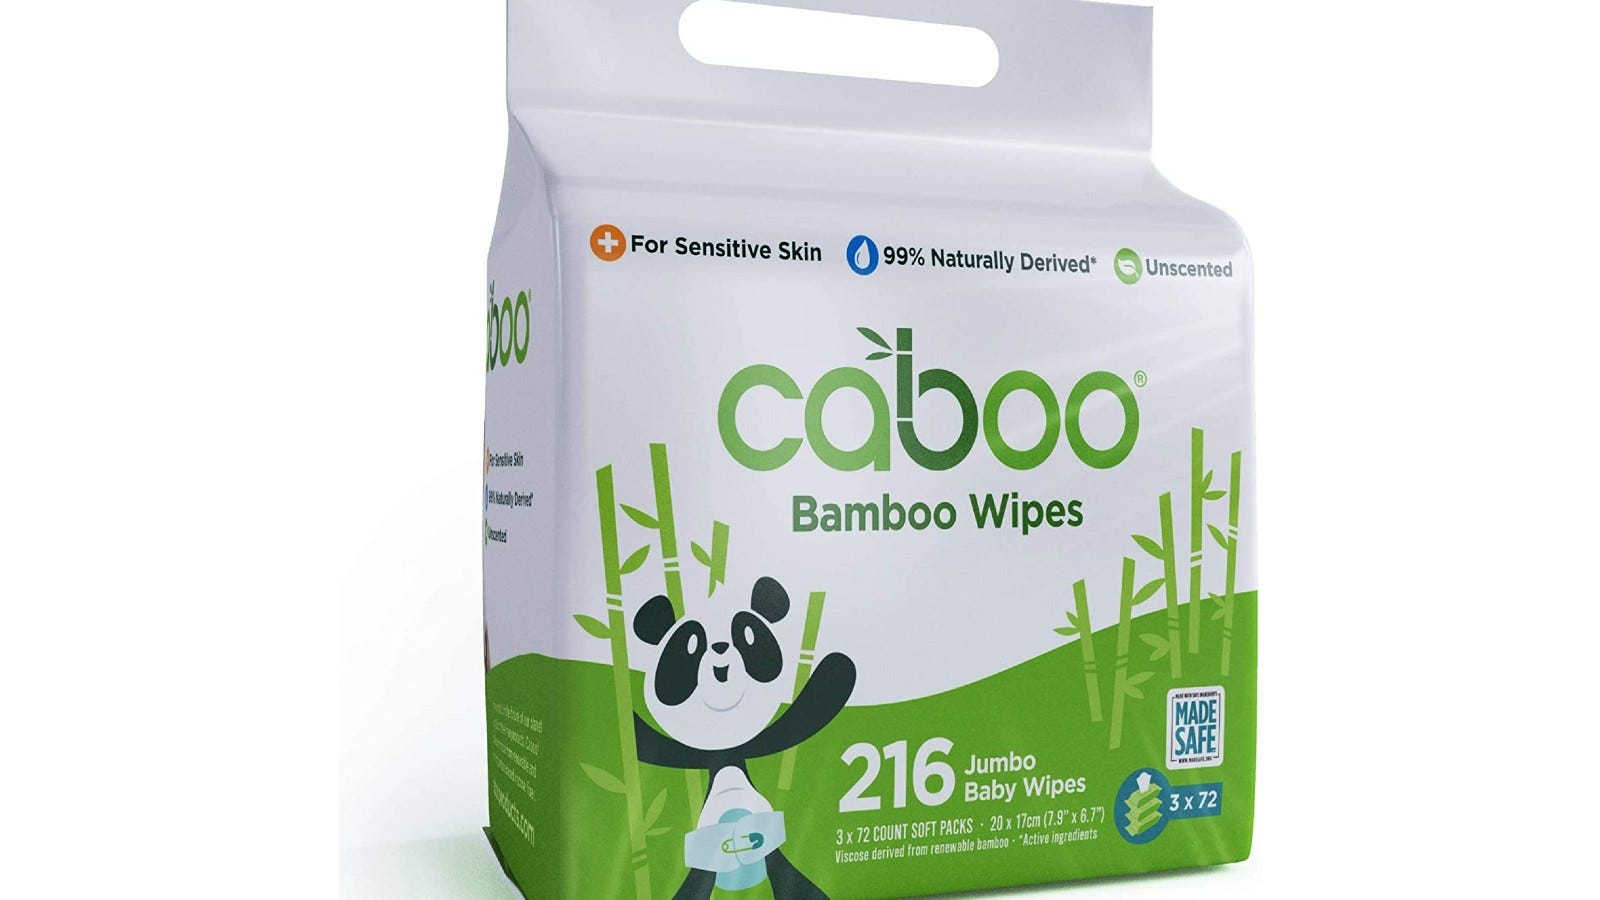 a bag of Caboo Bamboo Wipes